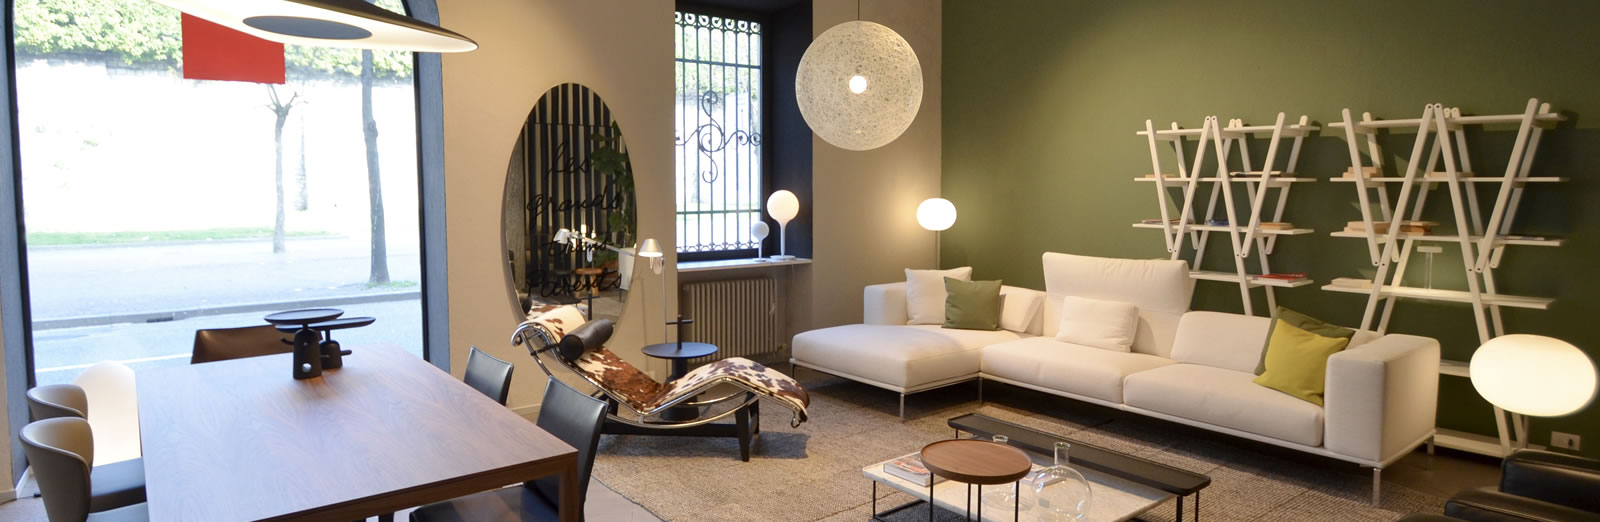 Showroom CassinaComo - showrooms Gerosa Design